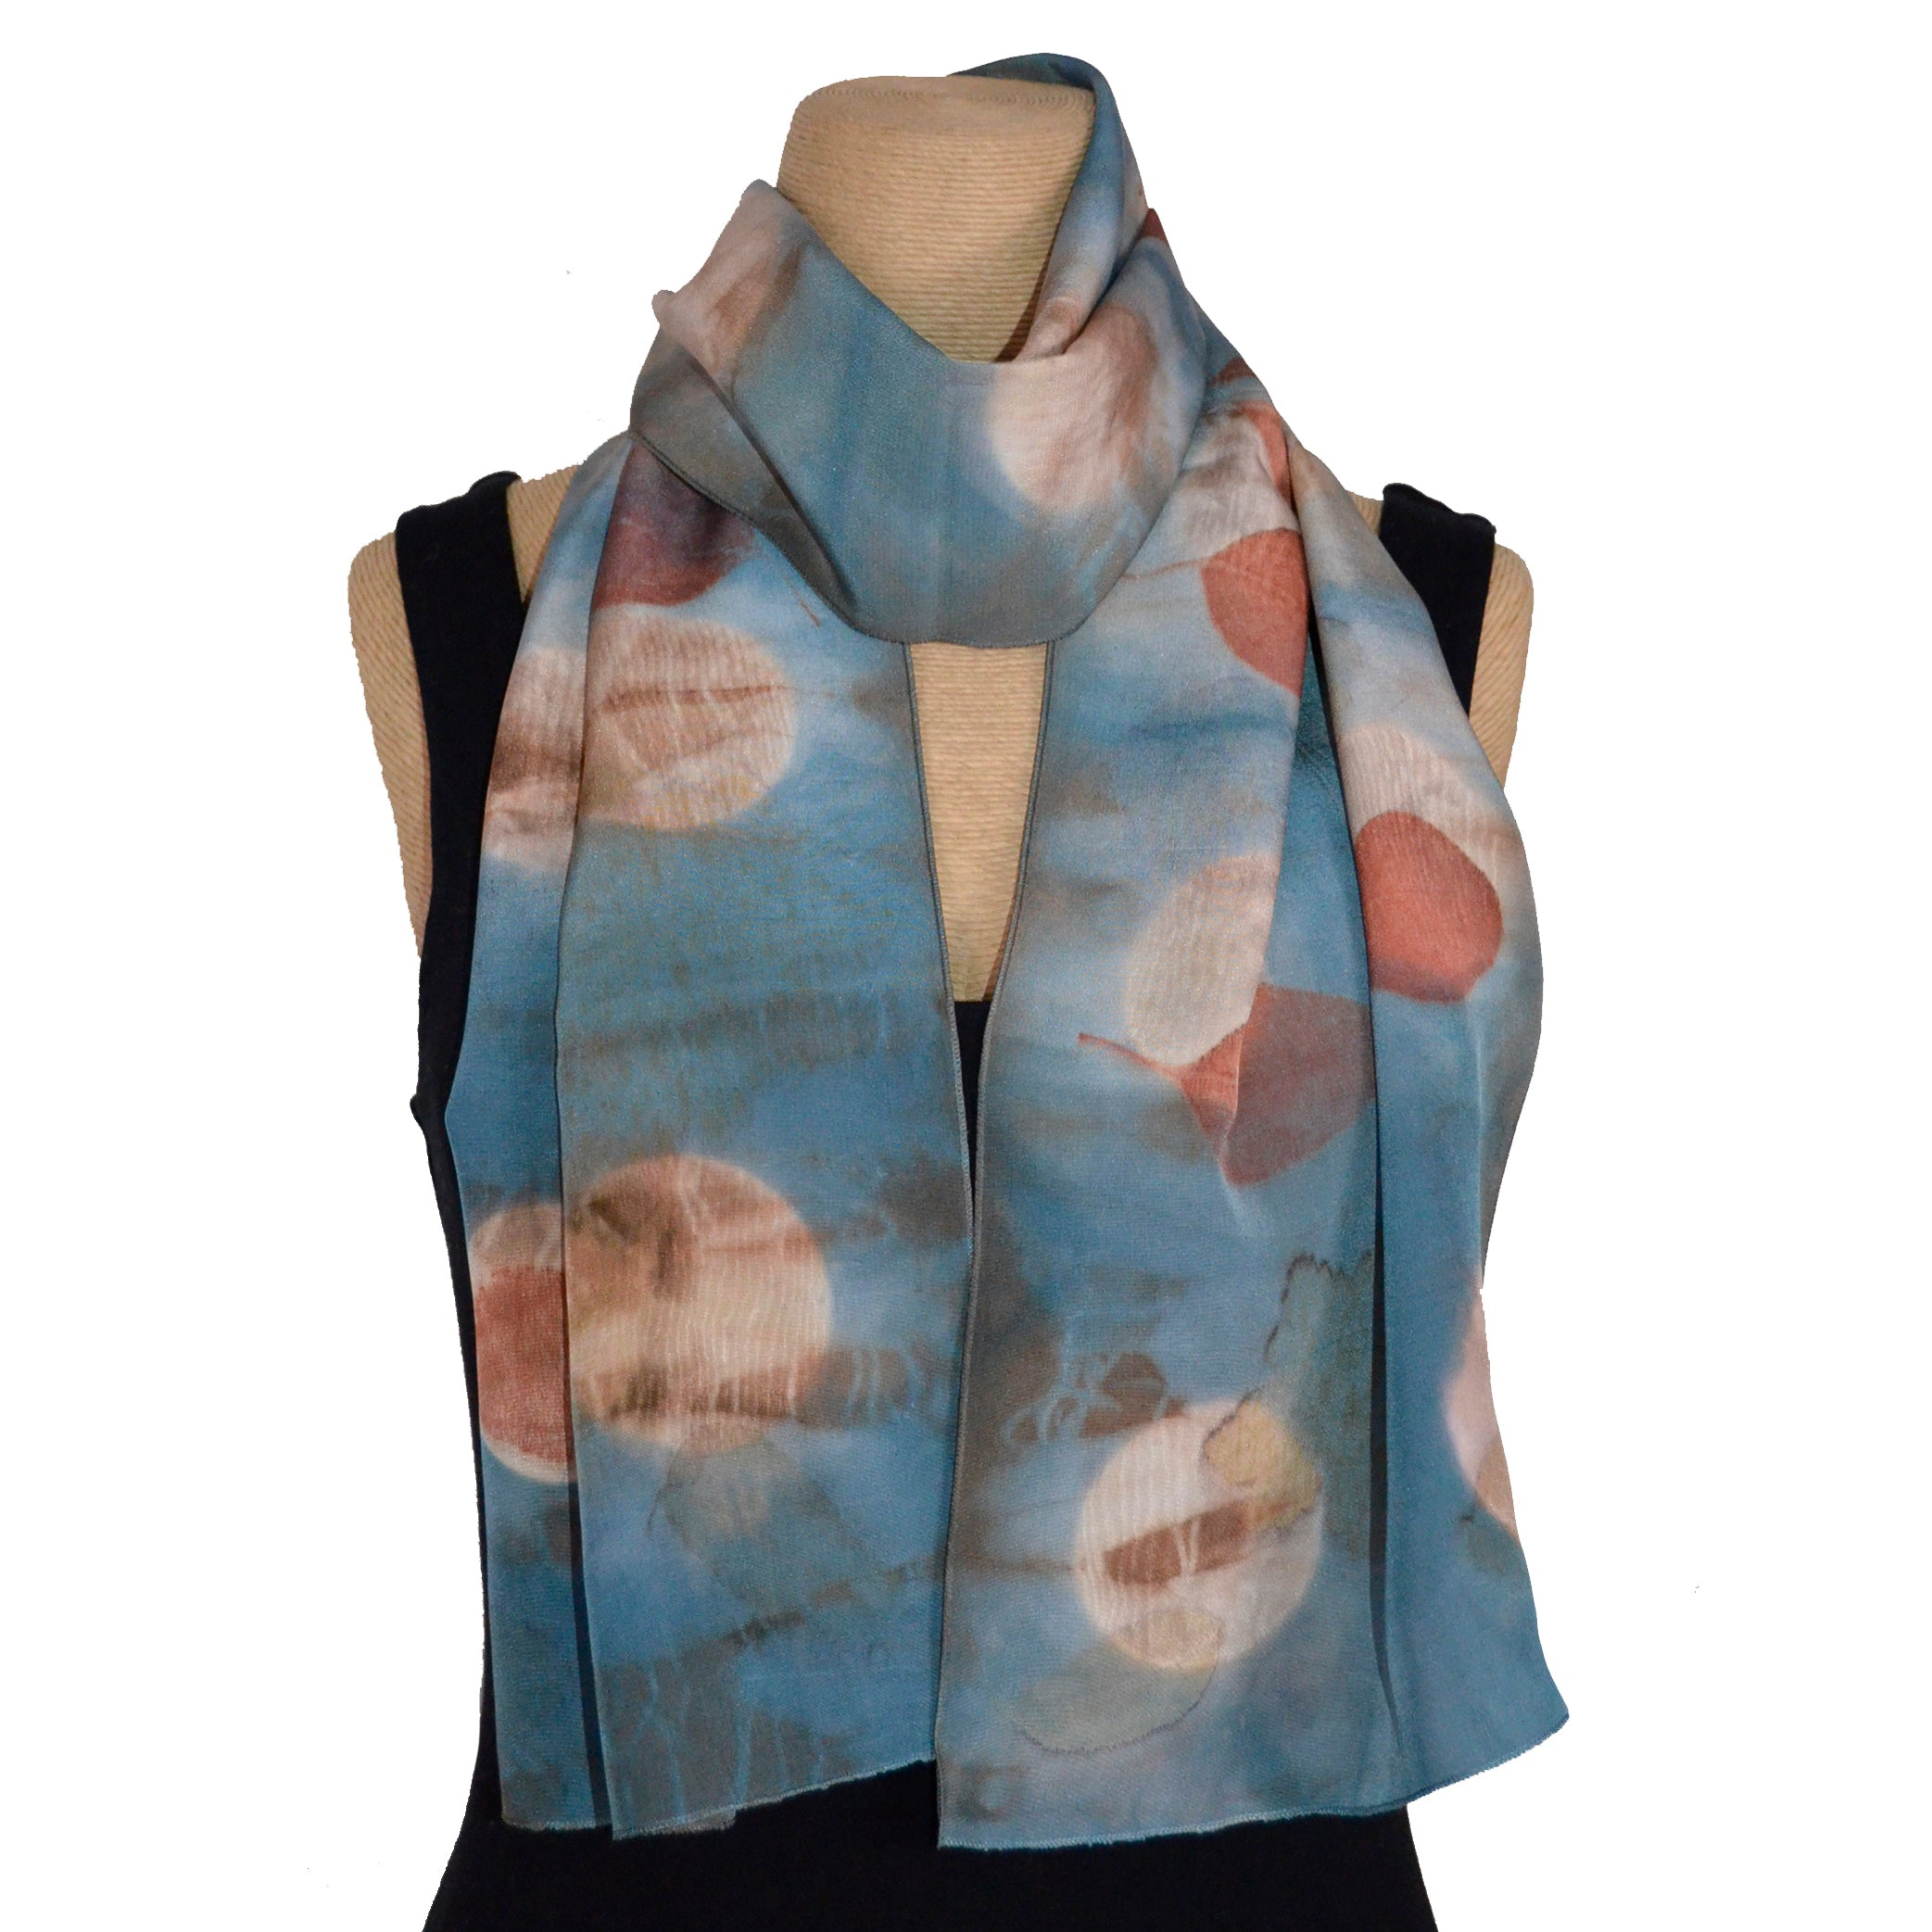 Nan Leaman Scarf, Botanicals with Geranium, Eucalyptus Overdyed in Blue